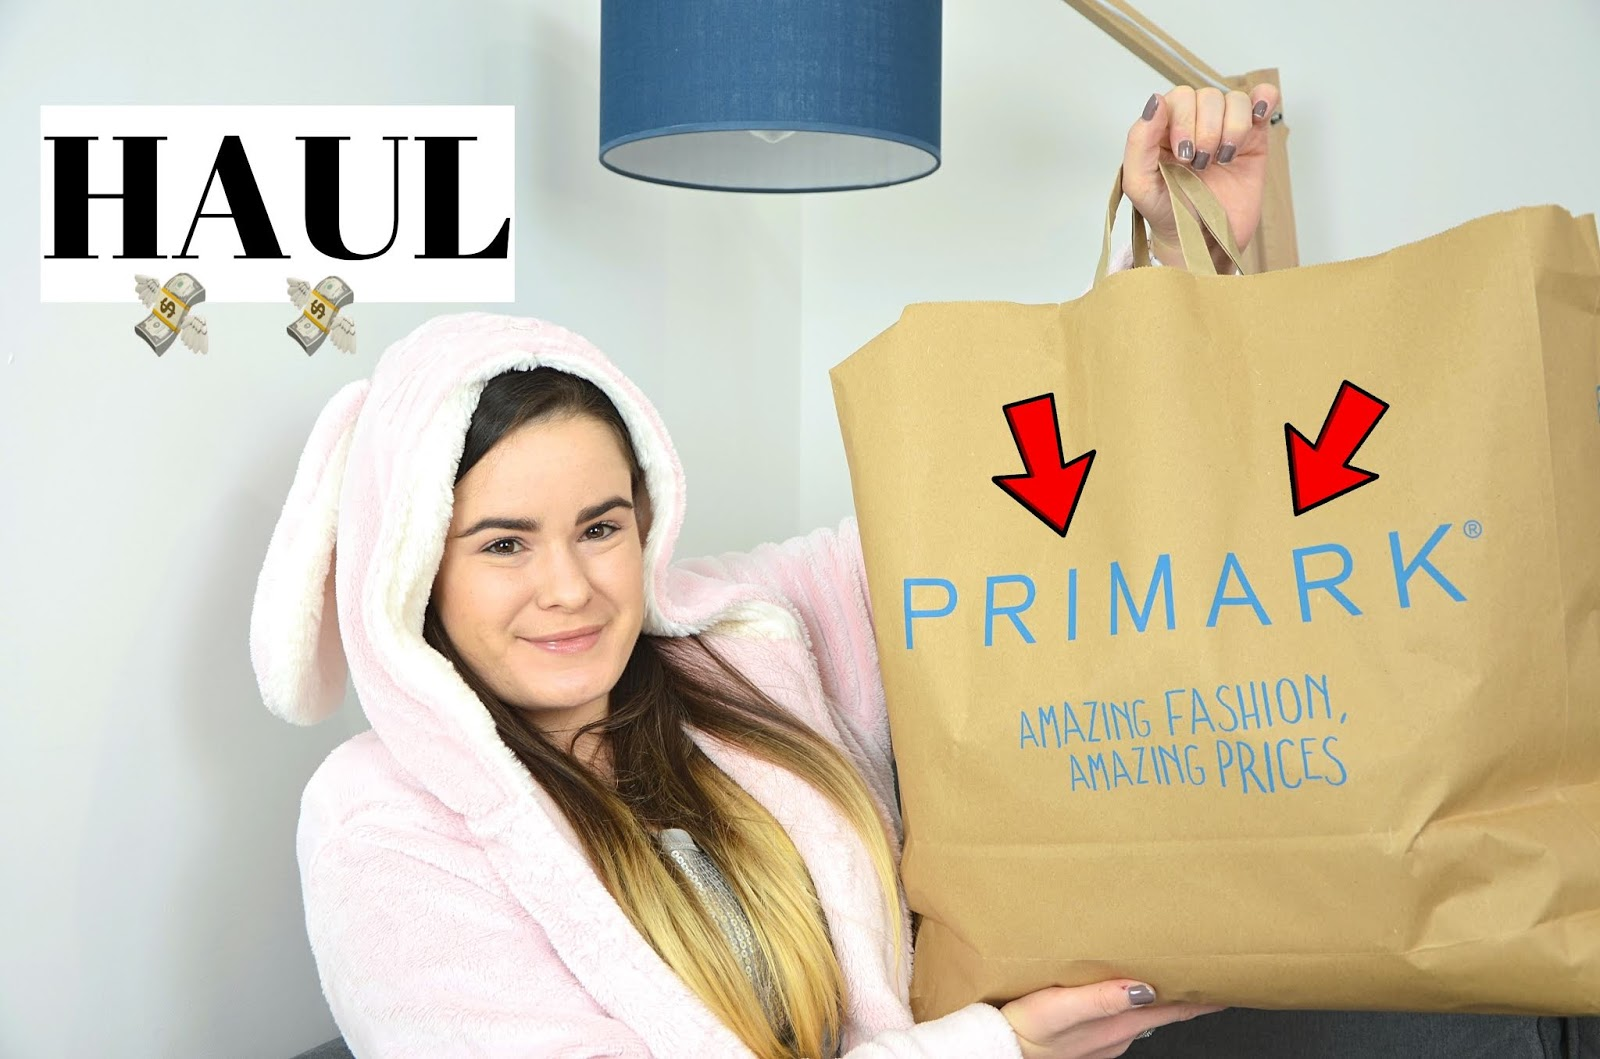 Haul primark toulouse mars 2019